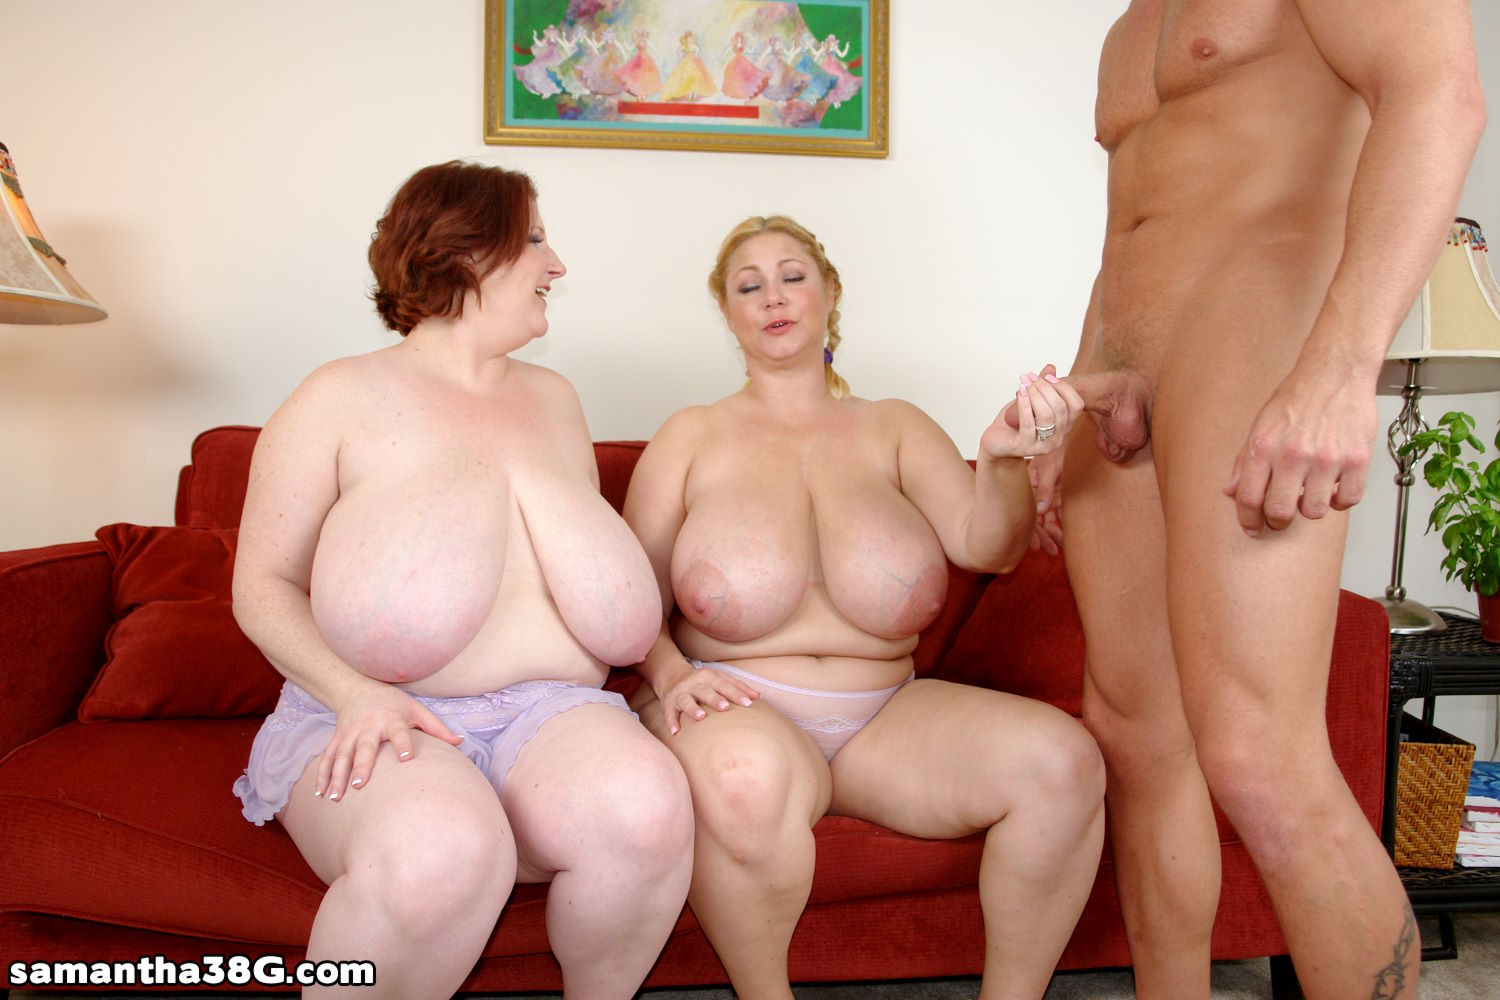 Big breasted threesomes